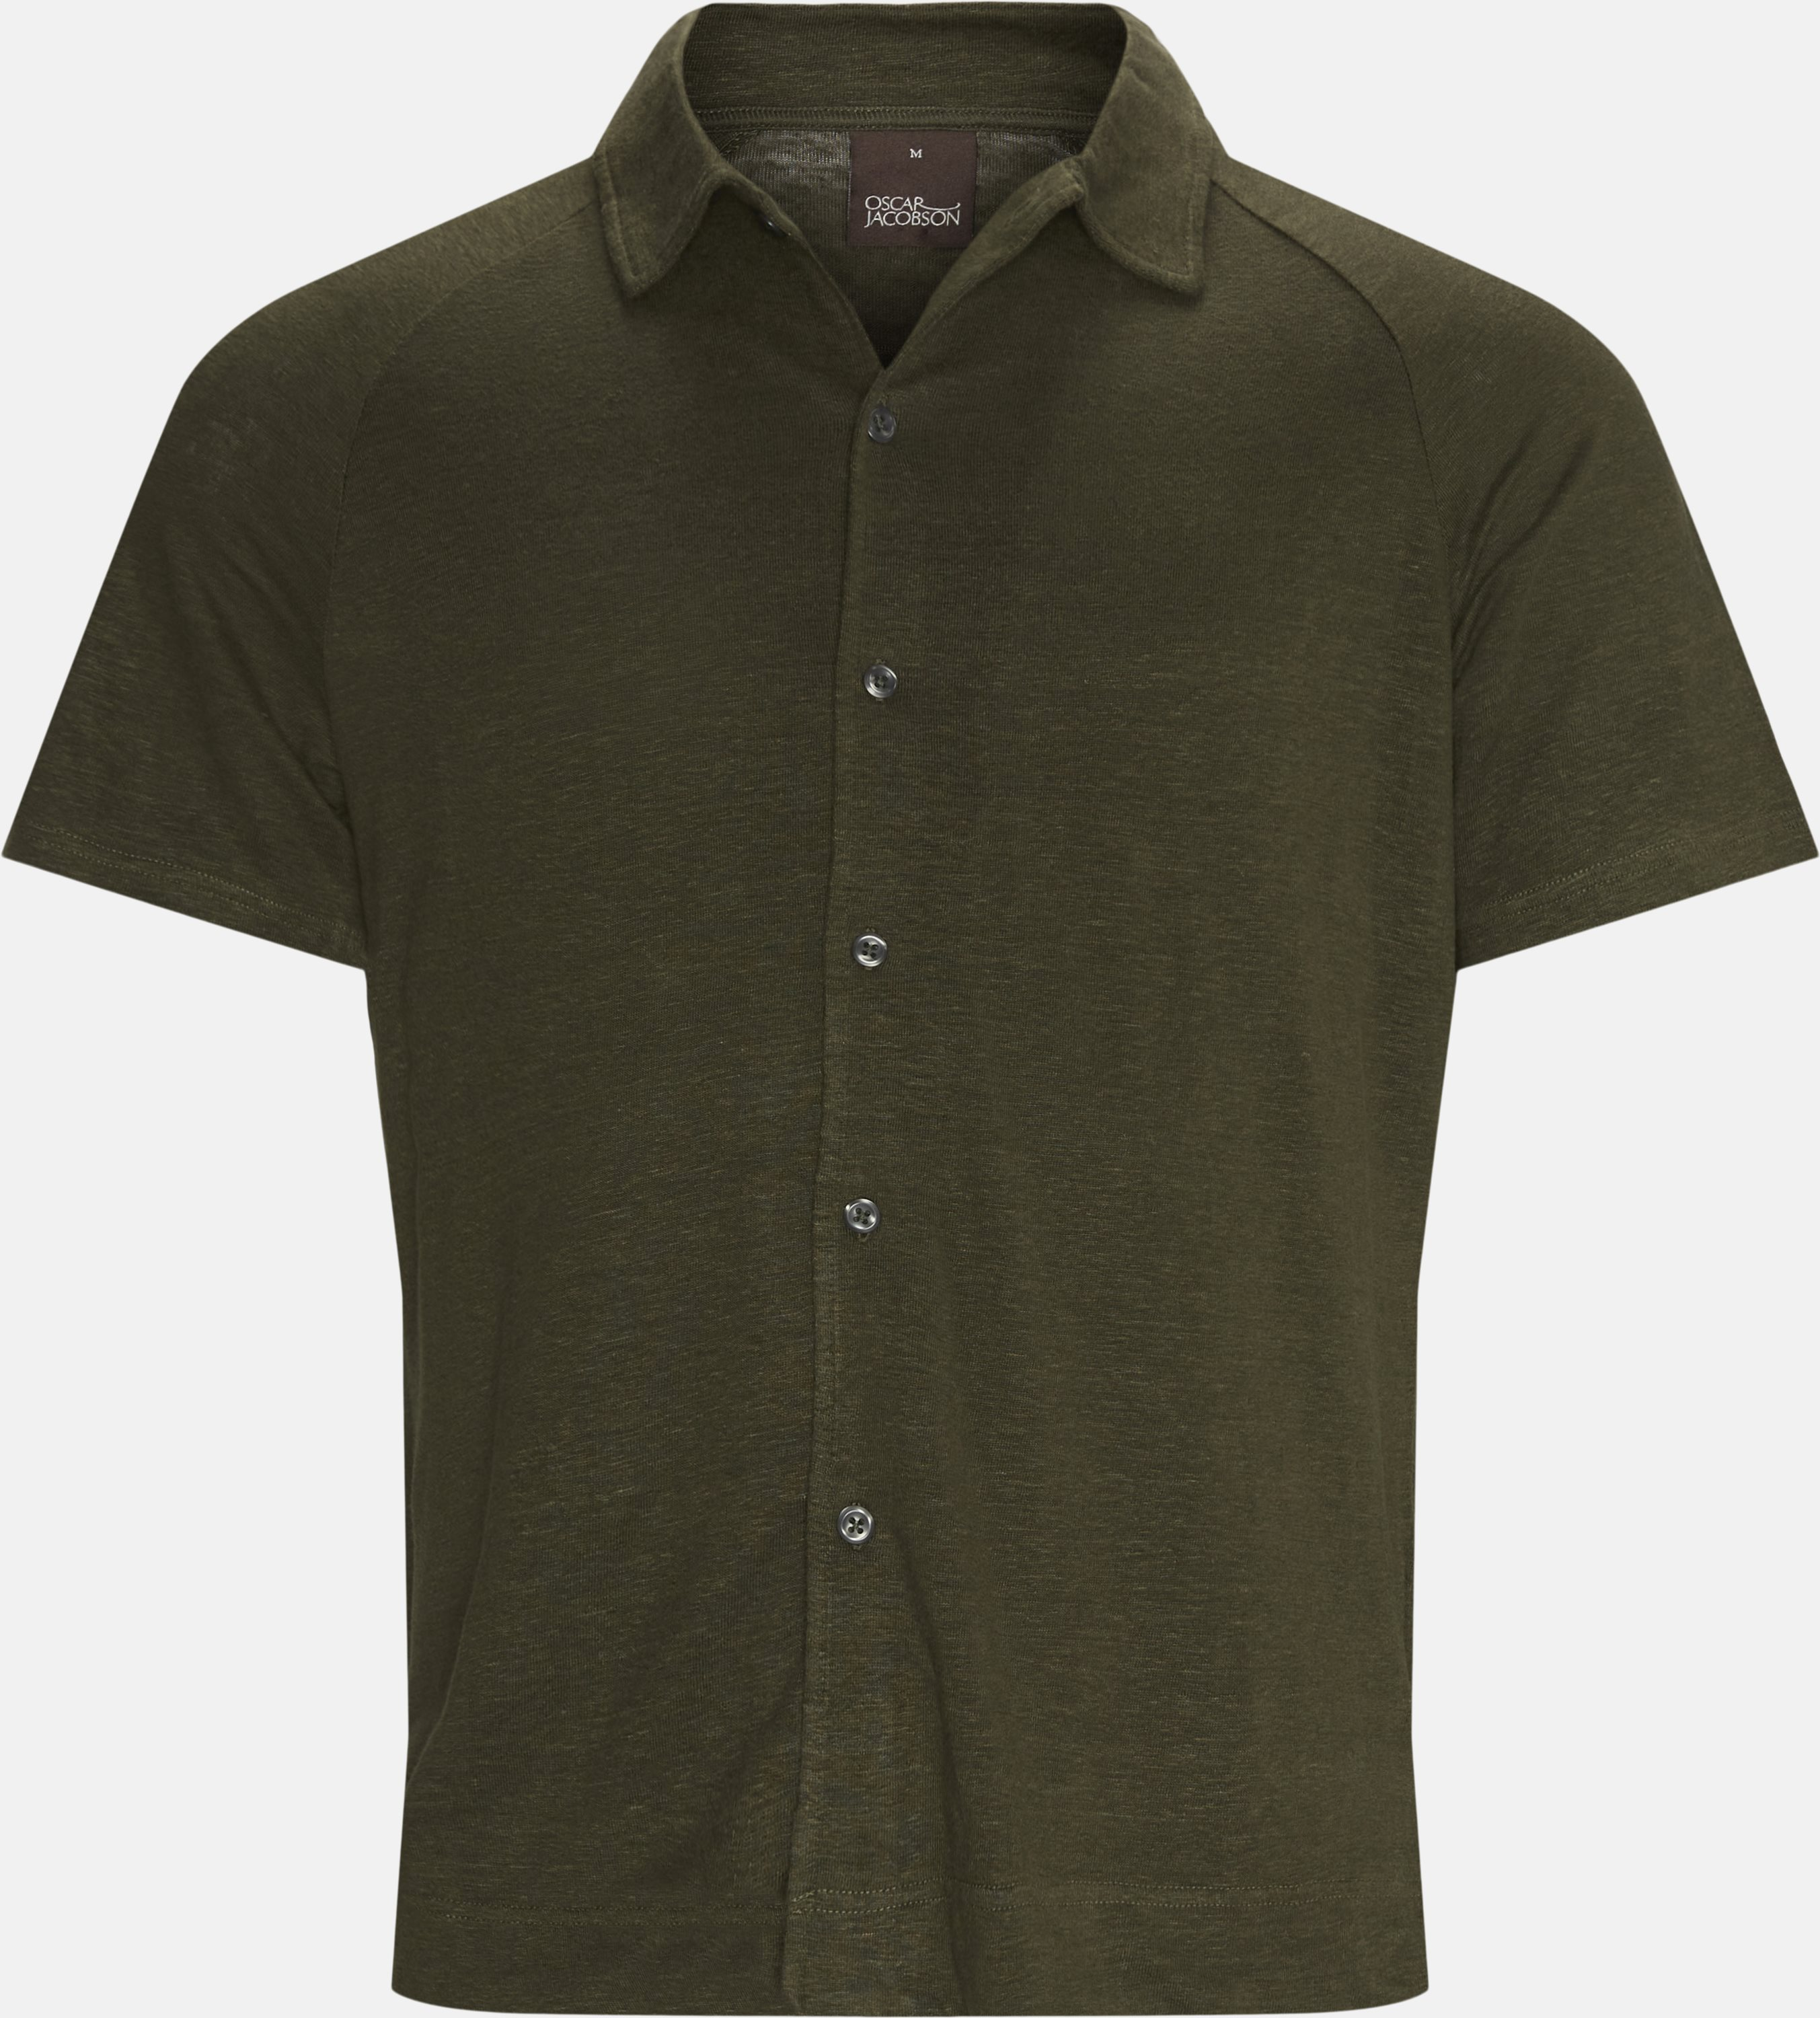 Albin Polo Shirt - T-shirts - Regular - Army